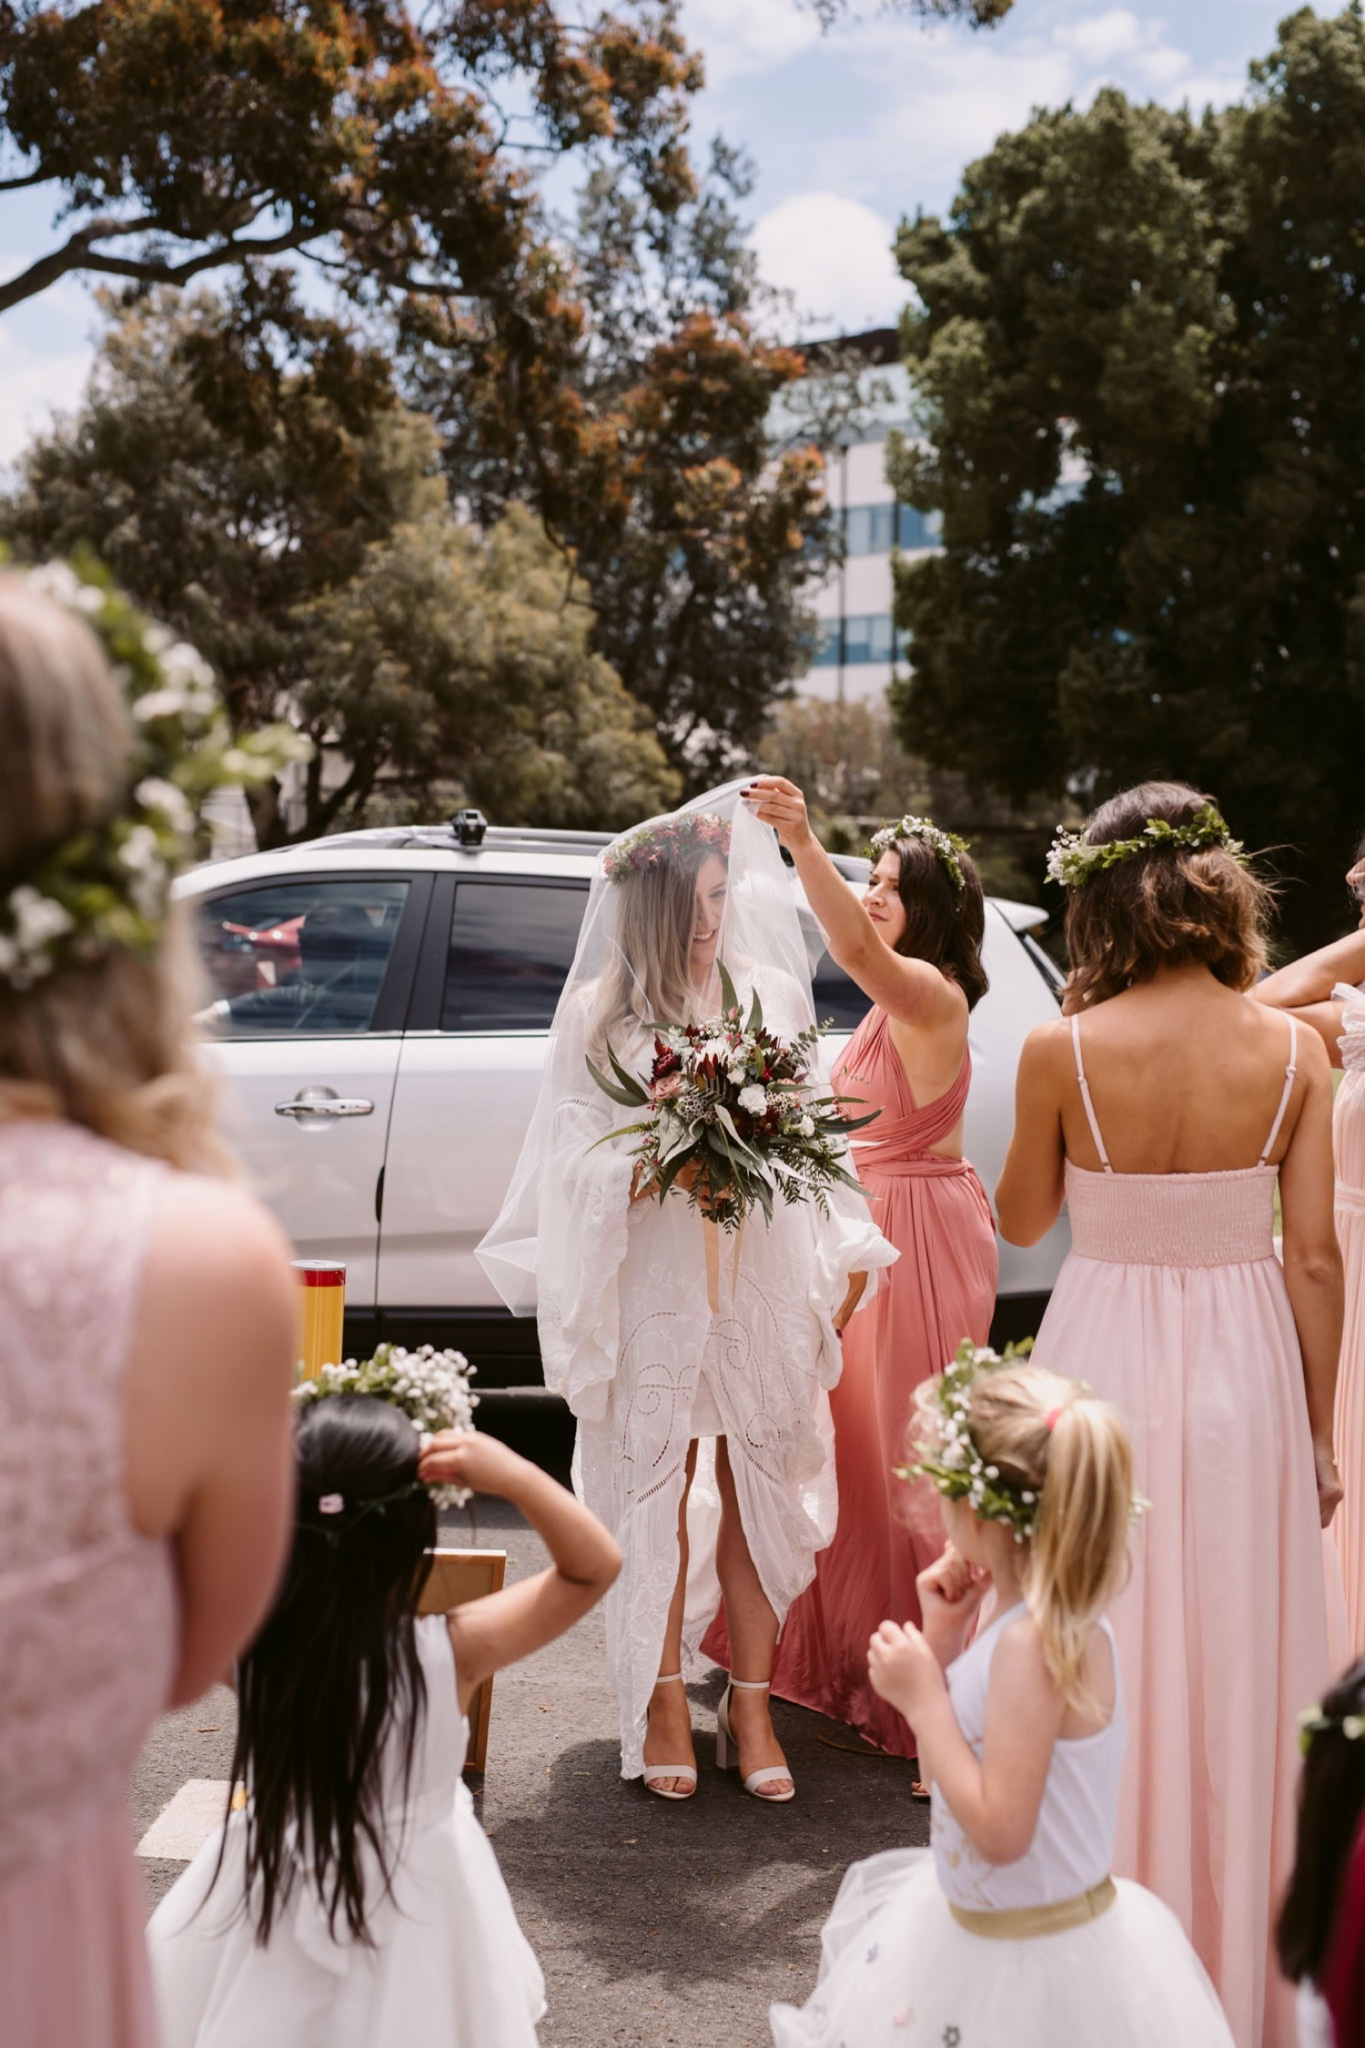 Gather and Tailor Melbourne Wedding Photography-88.jpg